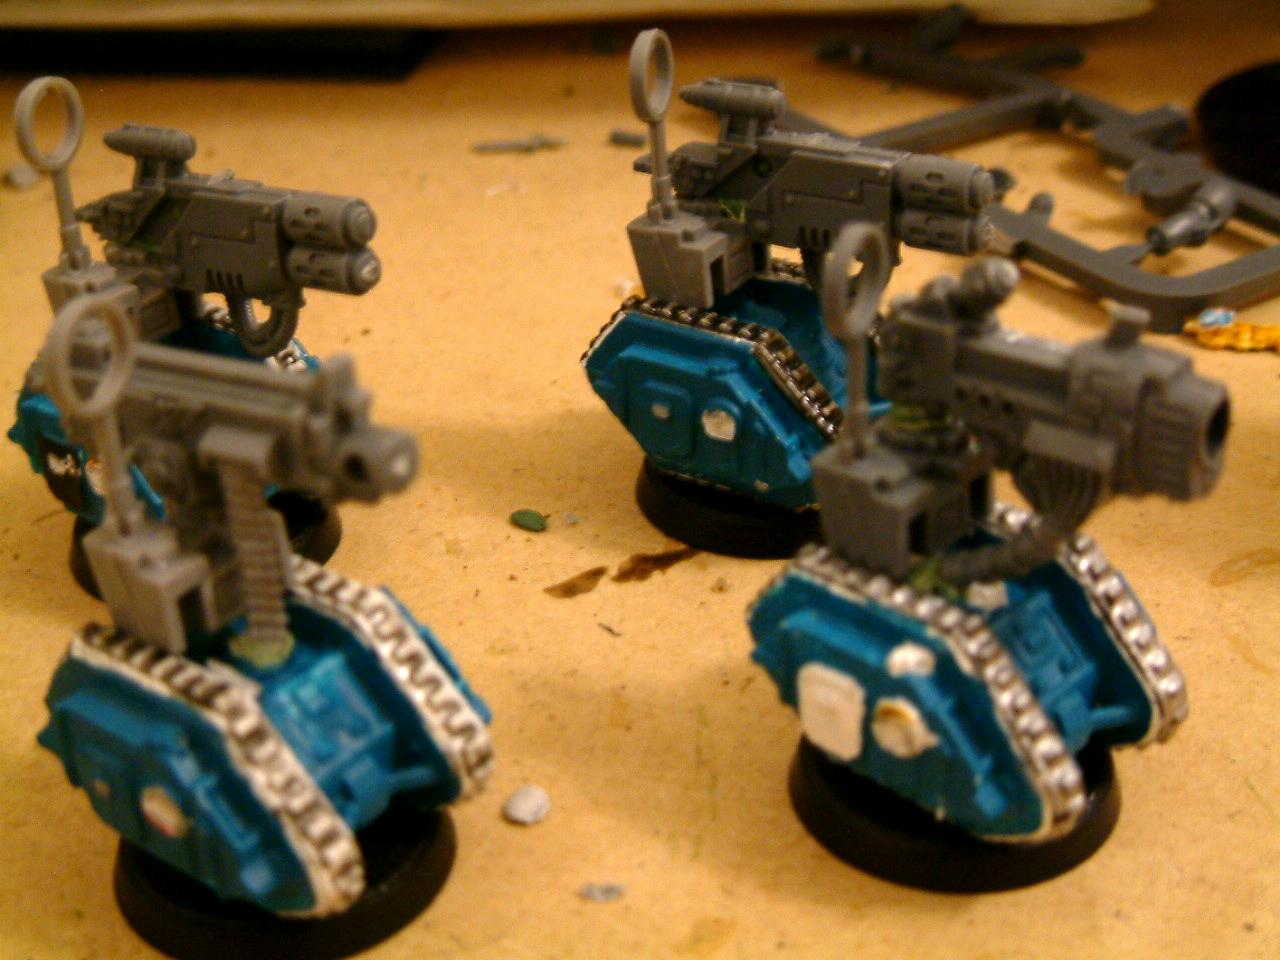 Brown, Classic, Conversion, Dwarves, Epic, Green, Guard, Imperial, Imperial Guard, Land Raider, Old, Out Of Production, Robot, Rogue, Servitors, Squats, Trader, Warhammer 40,000